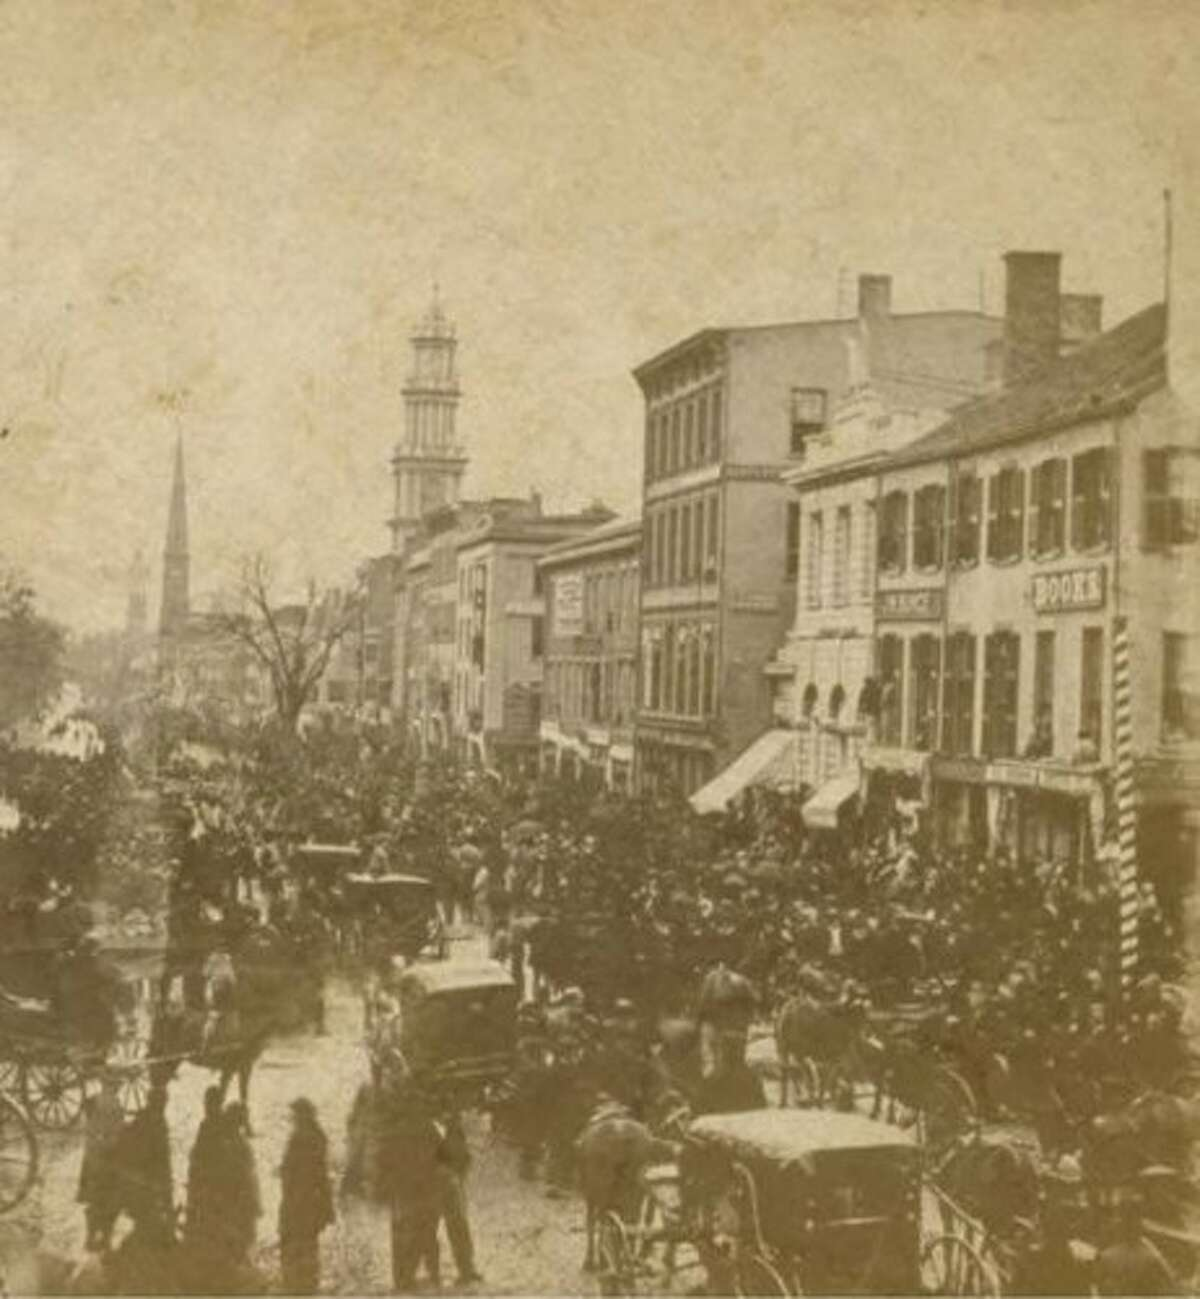 Election day on Main Street in Hartford back in 1867. Election Cake was a celebrated dish during local and national elections in Connecticut.